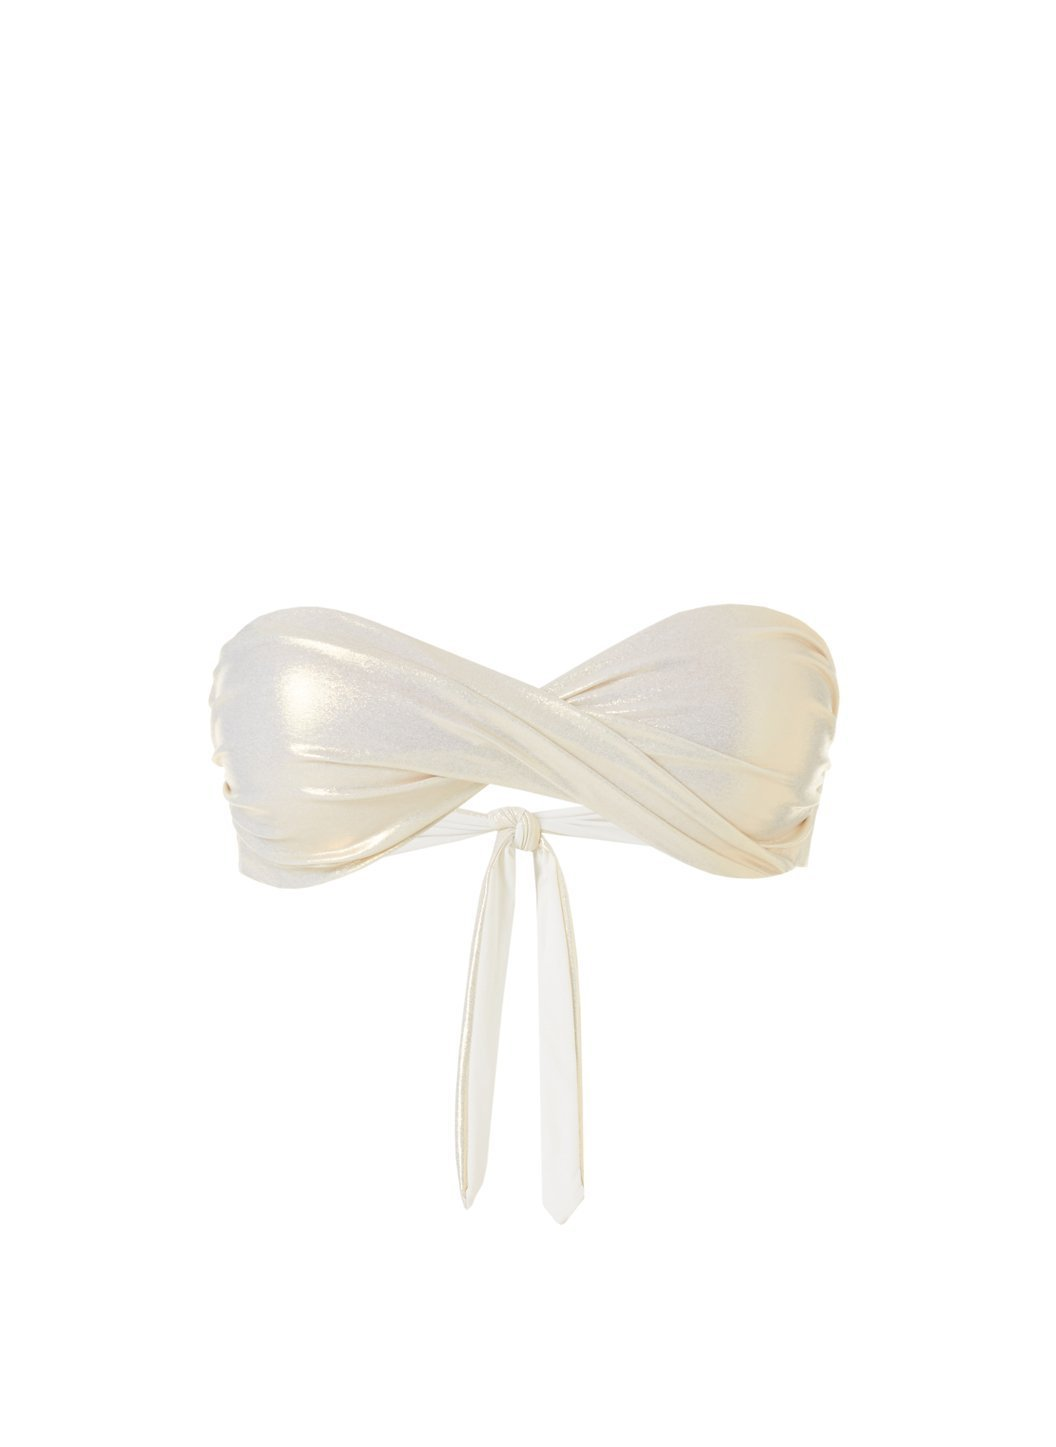 martinique-gold-bikini-top - Cut-Out